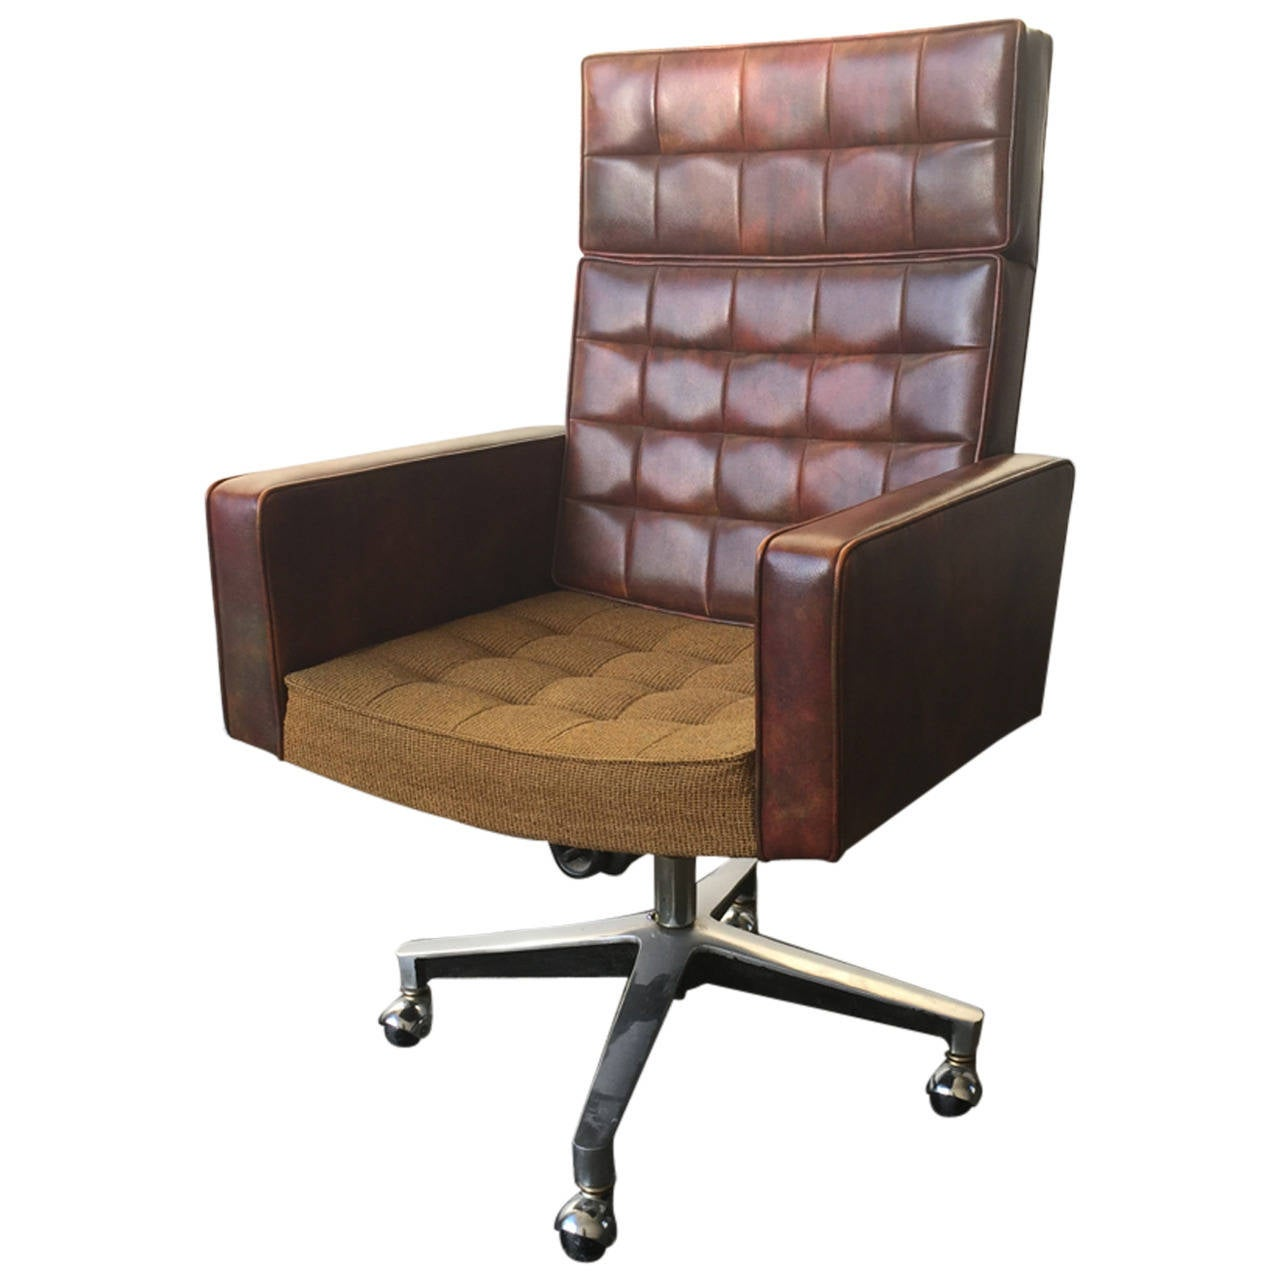 executive desk chair designed by vincent cafiero for knoll at 1stdibs